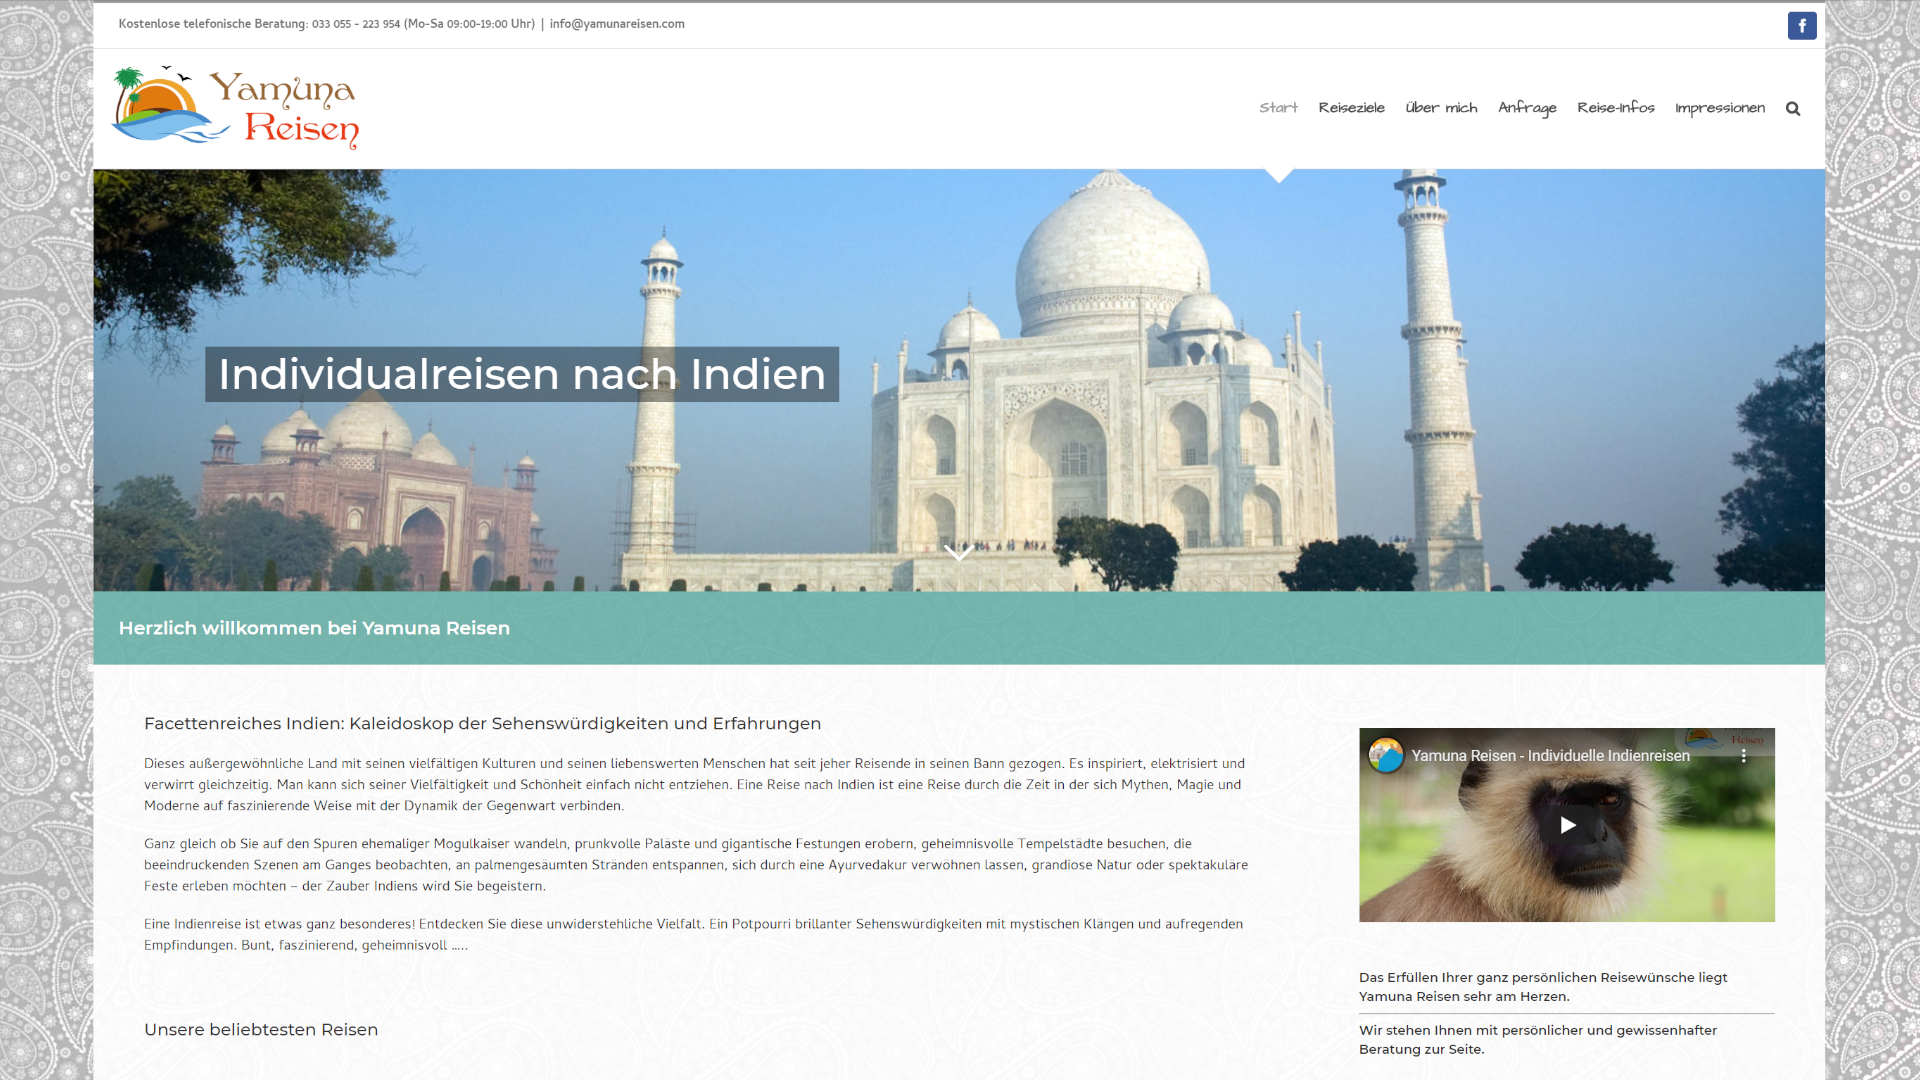 Screenshot: Homepage Yamunareisen